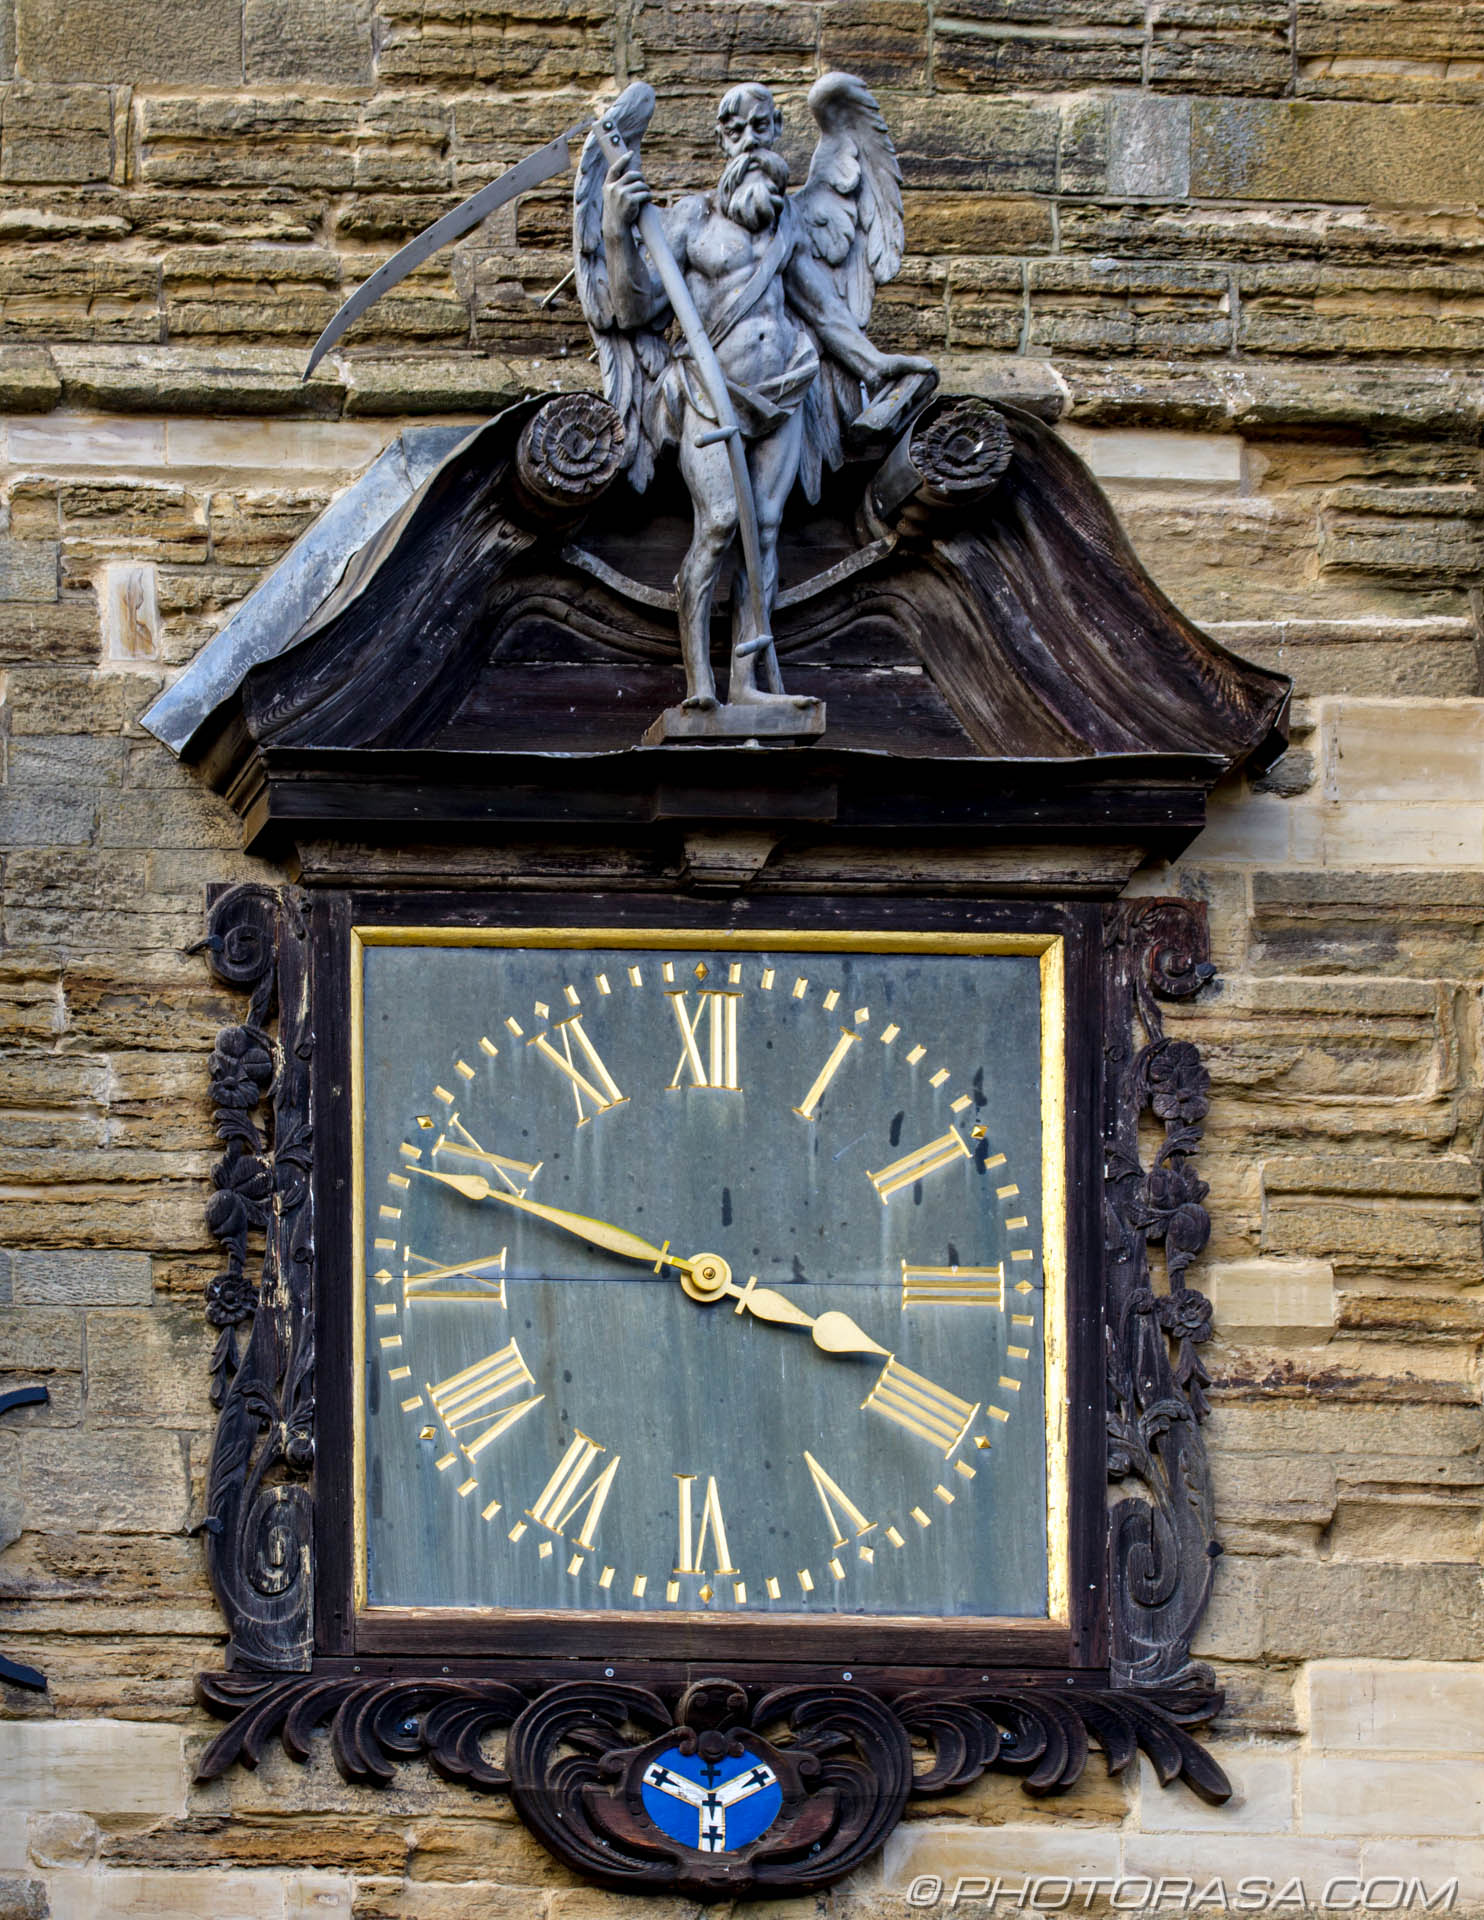 http://photorasa.com/st-dunstans-church-cranbrook/church-clock/